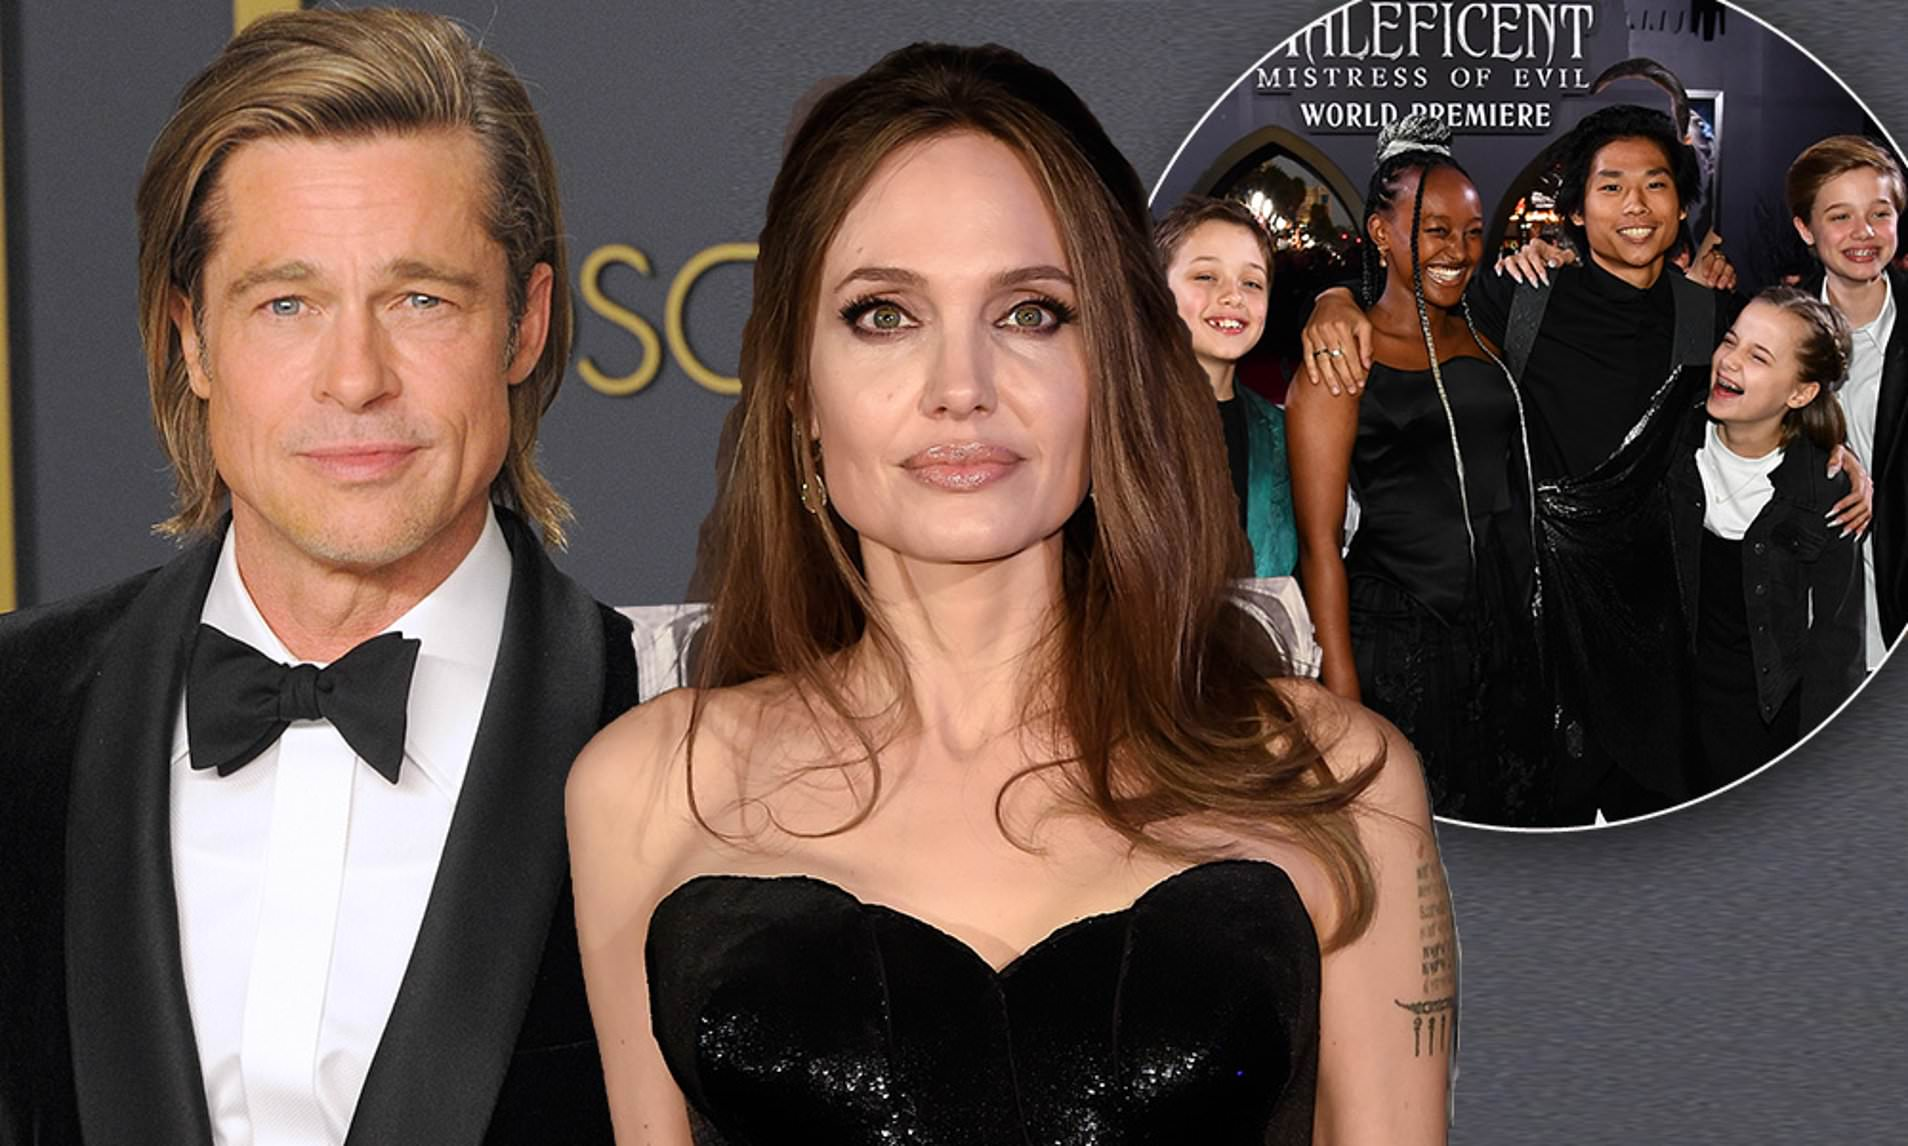 Brad Pitt and Angelina Jolie Divorce is yet not Finalized